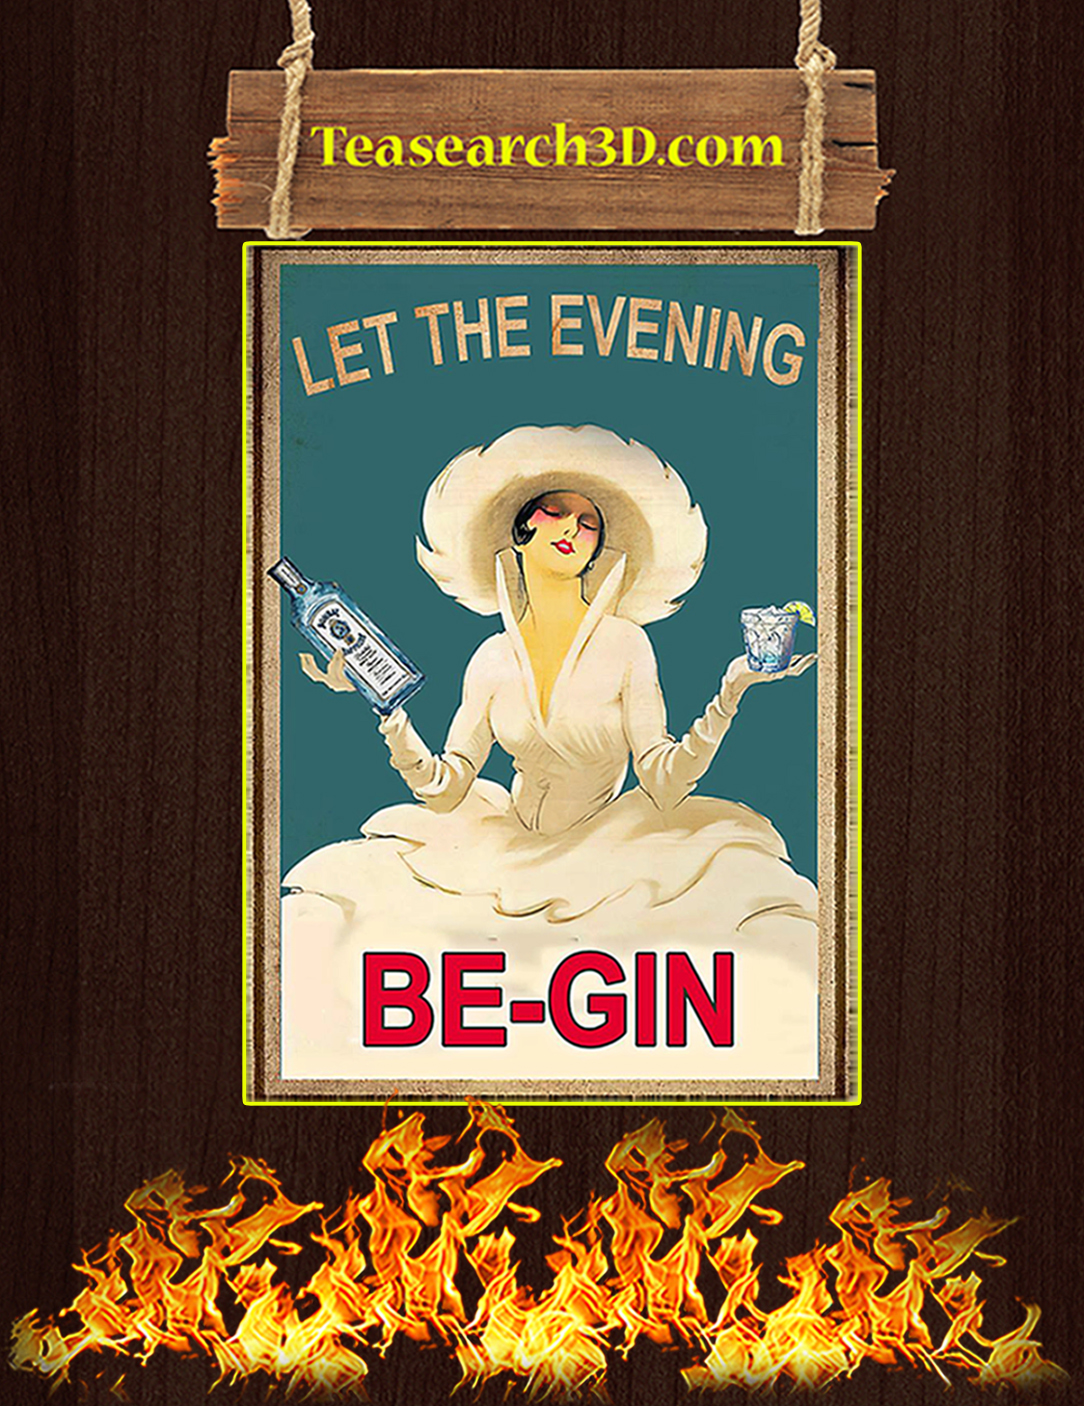 Let the evening be-gin poster A2